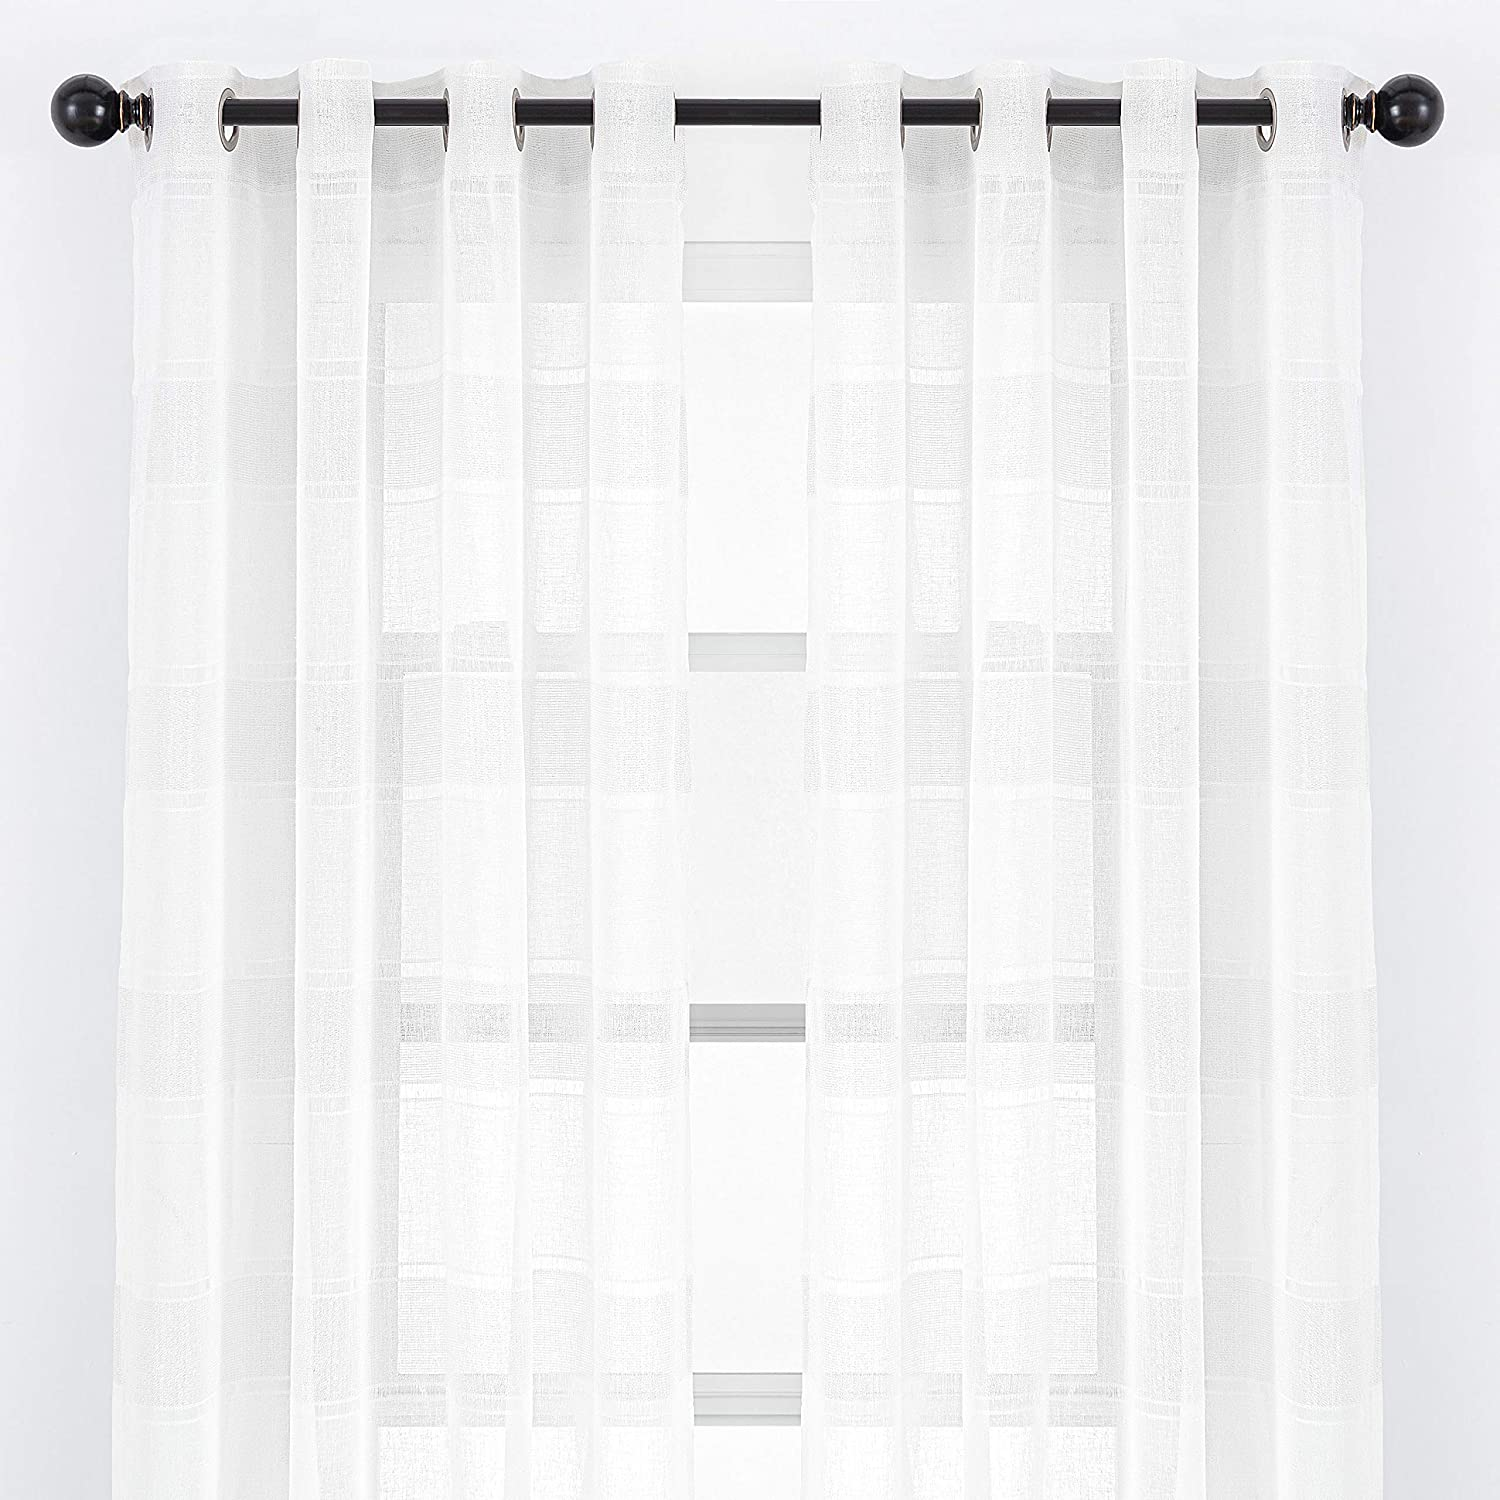 Chanasya 2-Panel Faux Linen Shimmer Textured Sheer Curtain Panels - for Windows Living Room Bedroom Kitchen Office - Elegant Translucent Window Drapes for Home Decor - 52 x 63 Inches Long - White